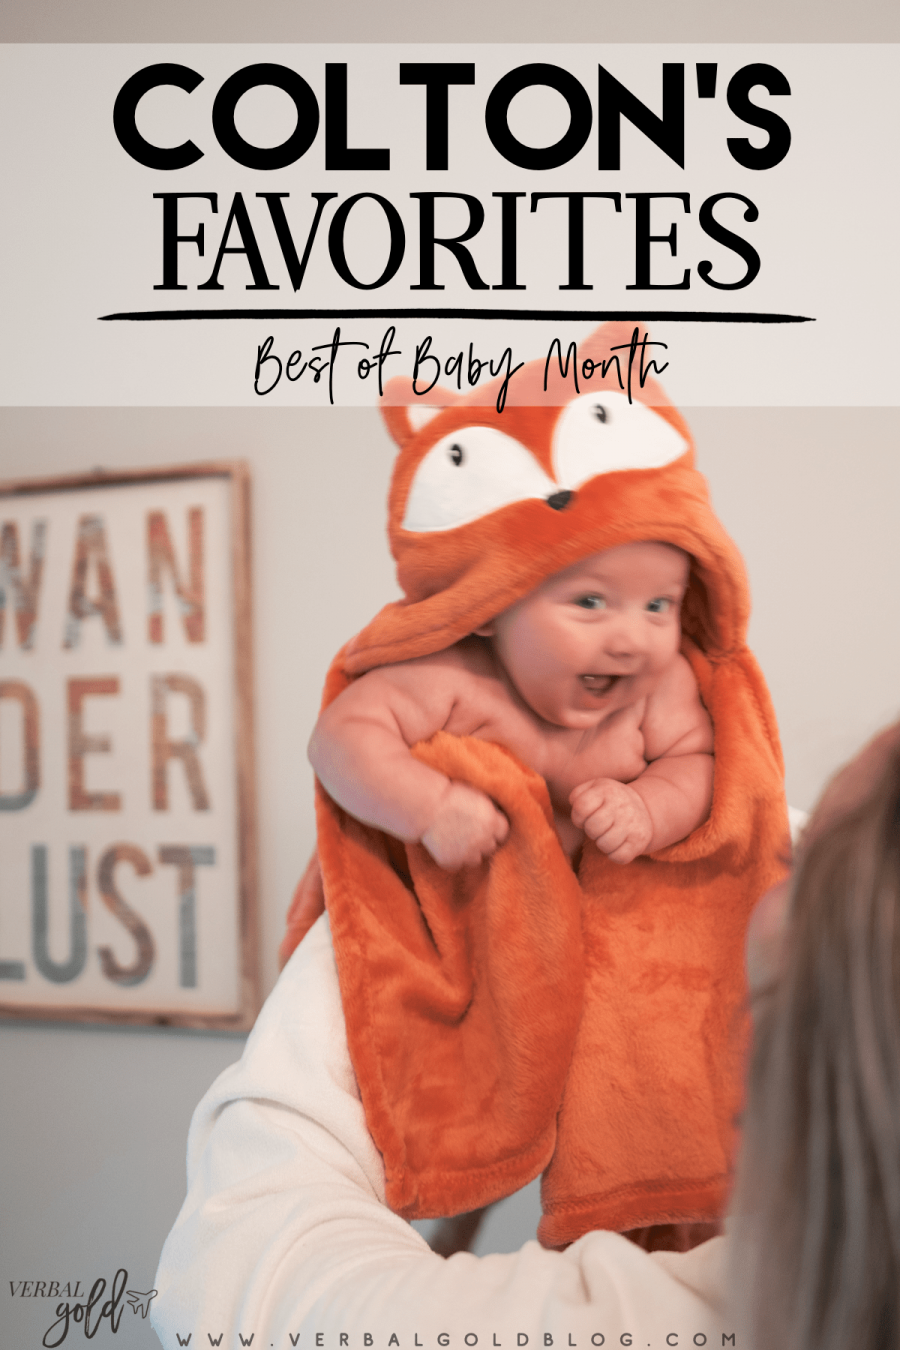 Colton's favorites from the Best of Baby Month